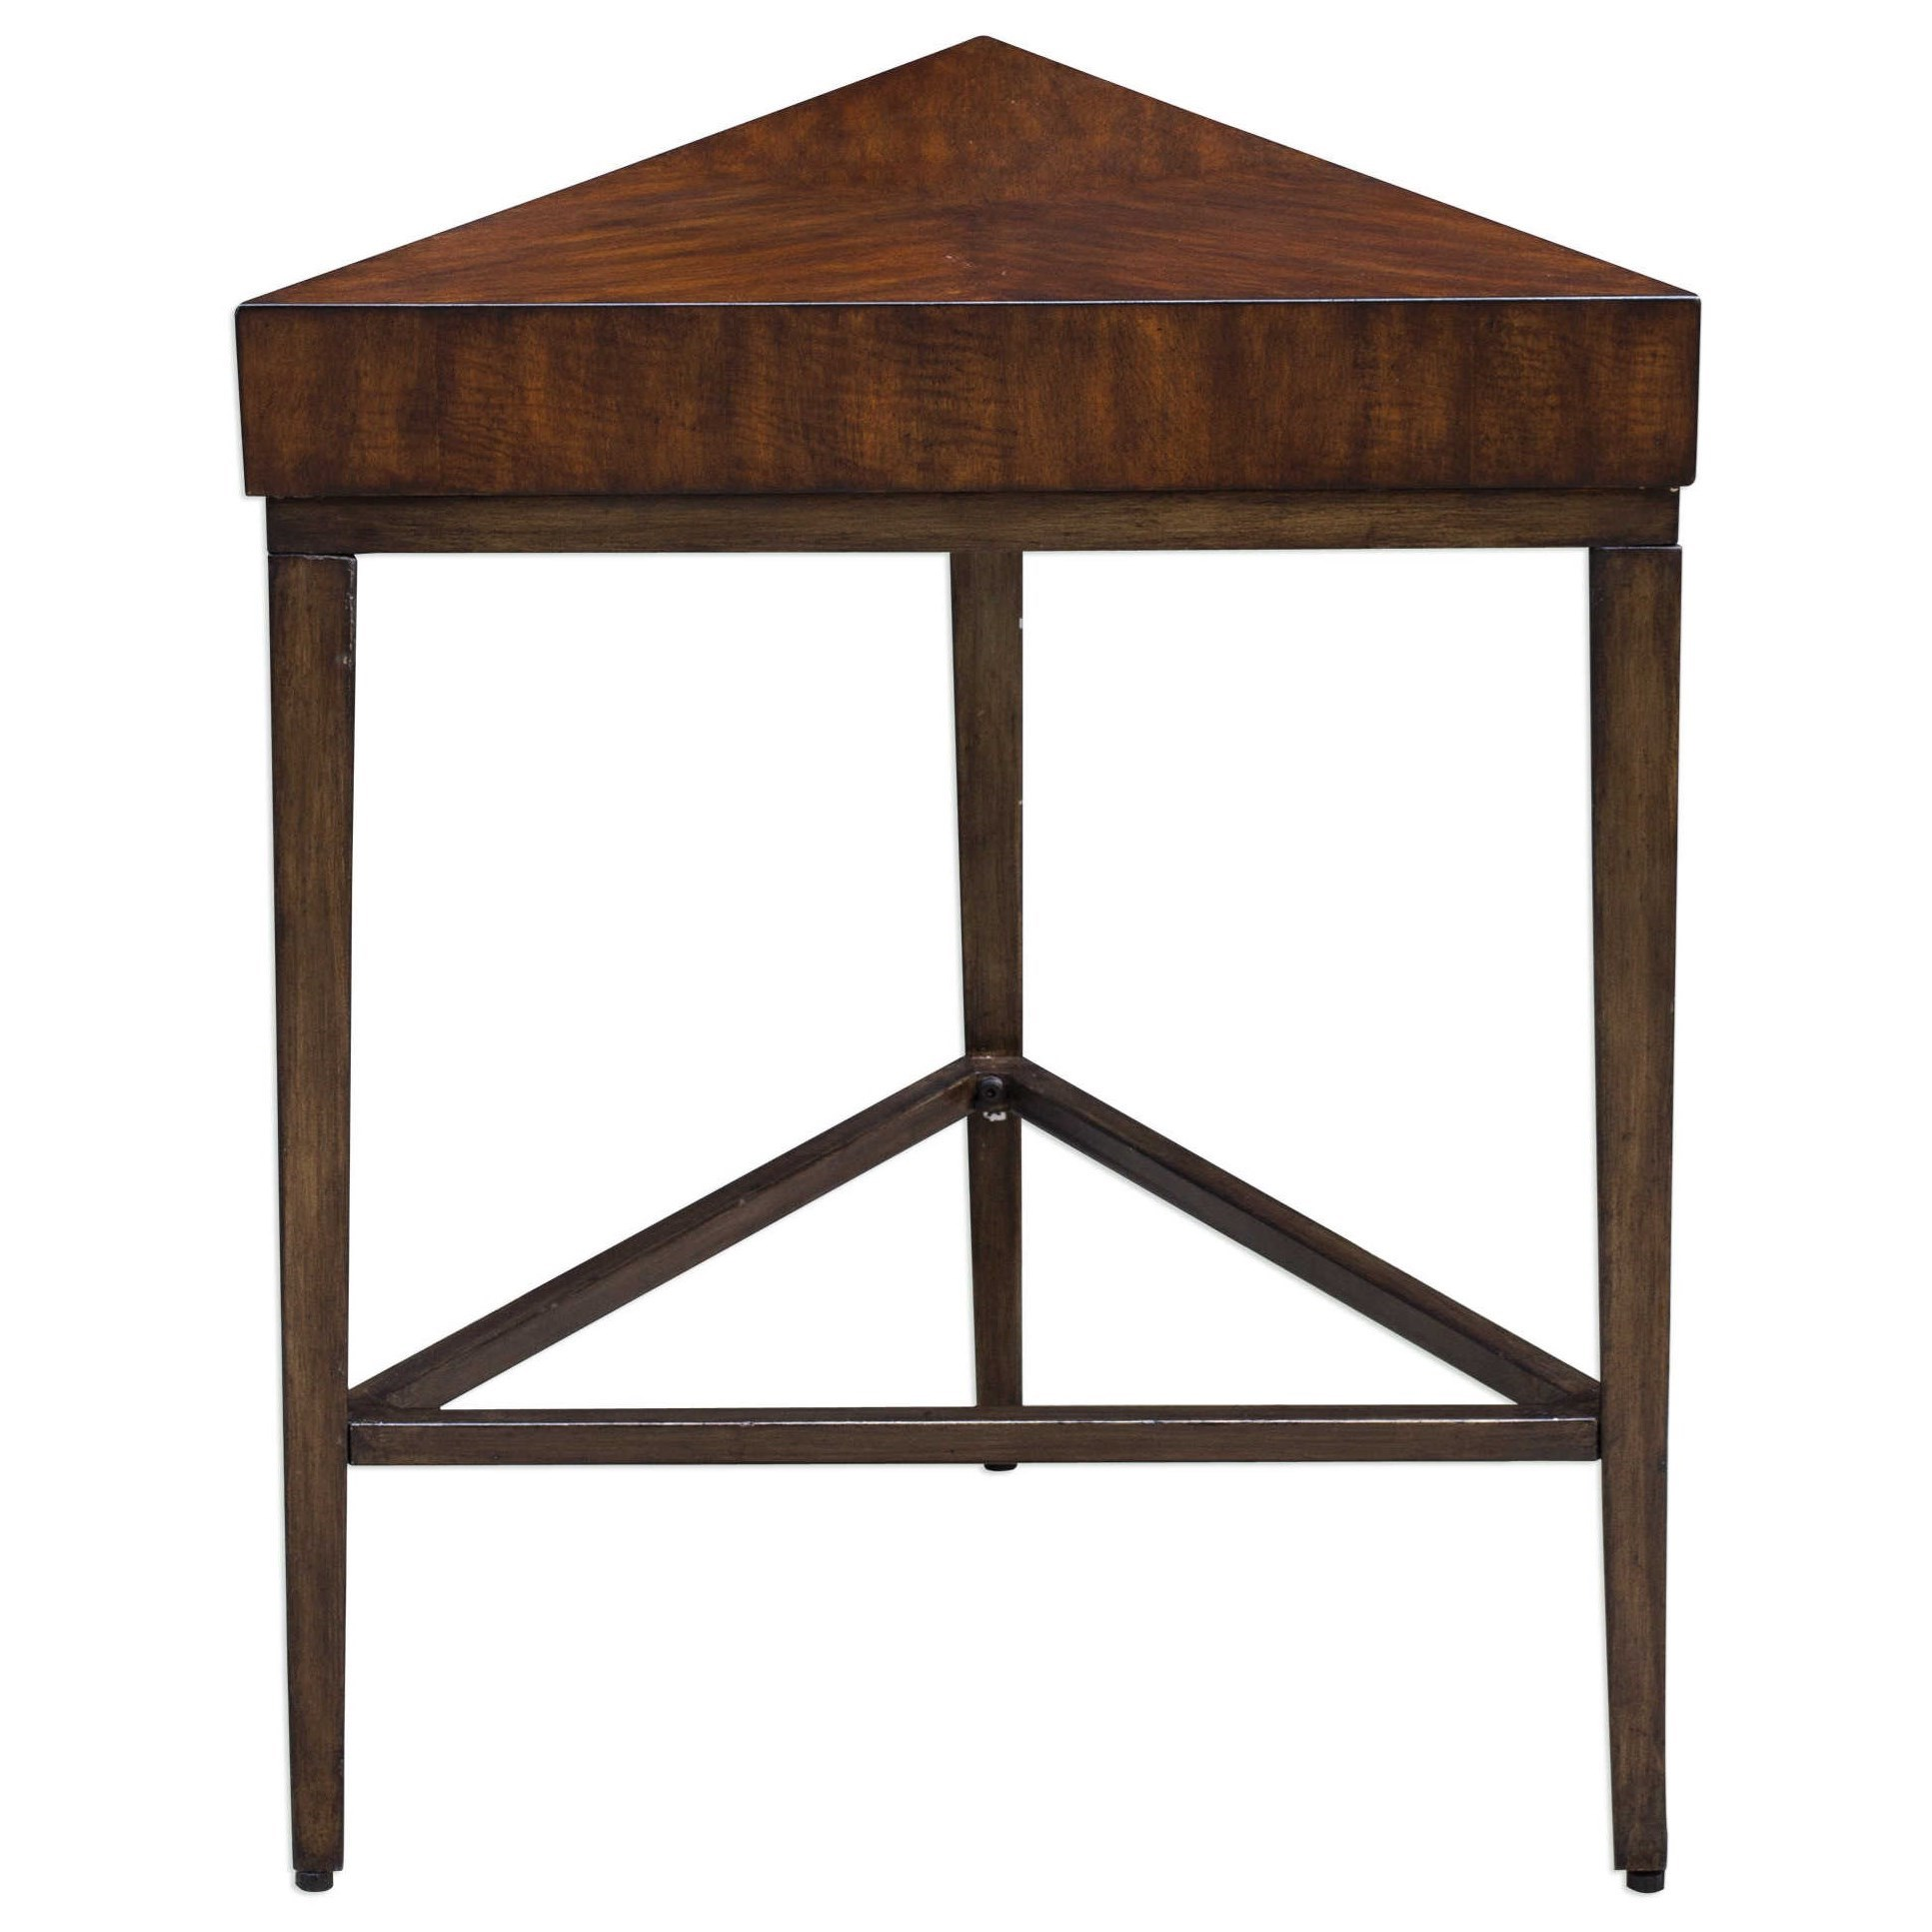 Uttermost Accent Furniture Ingo Triangle Accent Table - Item Number: 25766